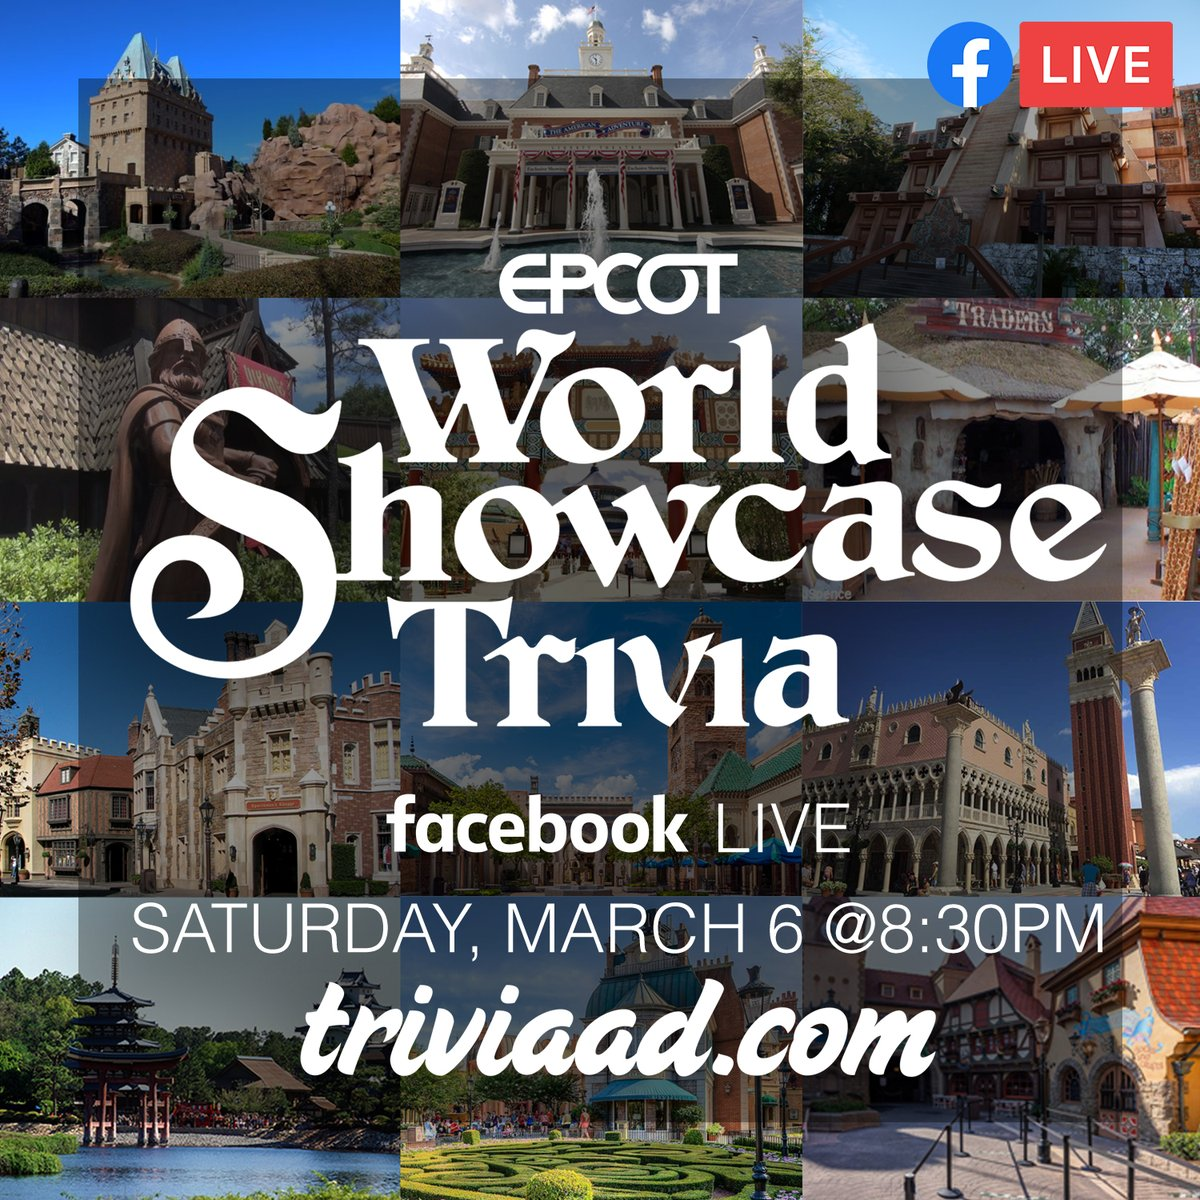 #EPCOT #WorldShowcase #Trivia via Facebook Live-Stream this Sat., 3/6 at 8:30pm ET, hosted by @FTJByKara. RSVP GOING on the Facebook event at;  #WDW #Disney #DisneyWorld #Ratatouille #FrozenEverAfter